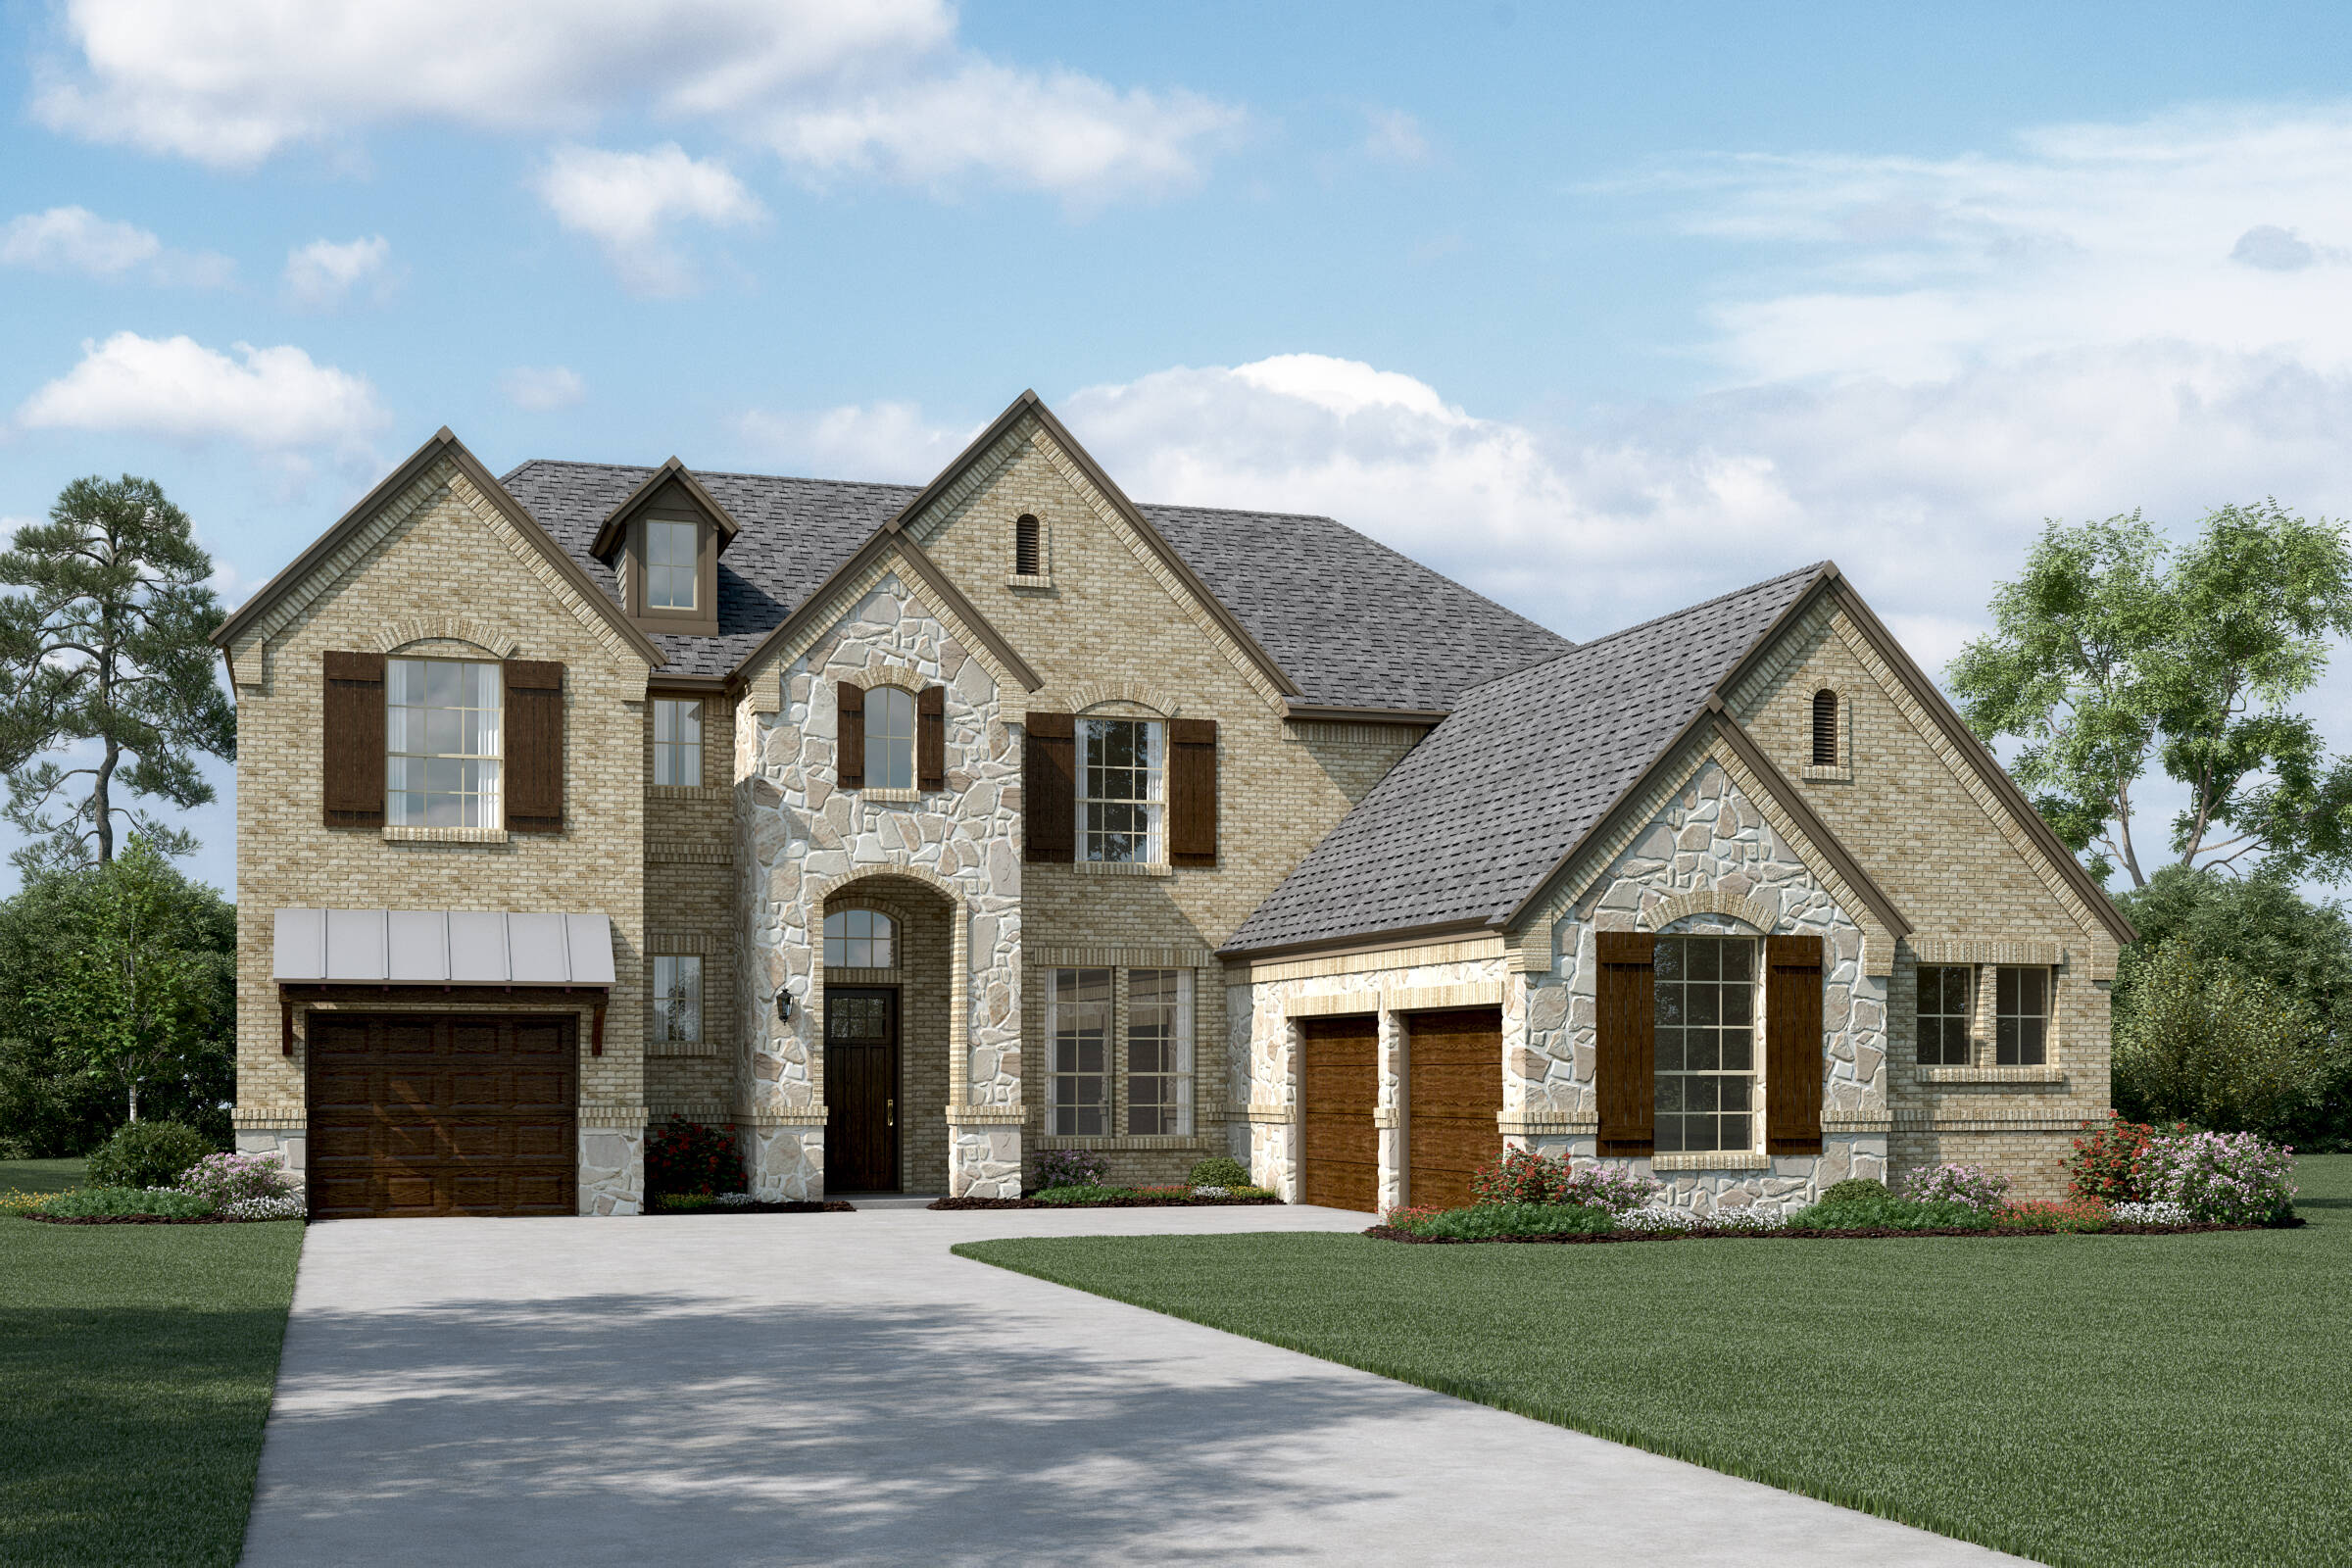 Weston L Stone new homes dallas tx